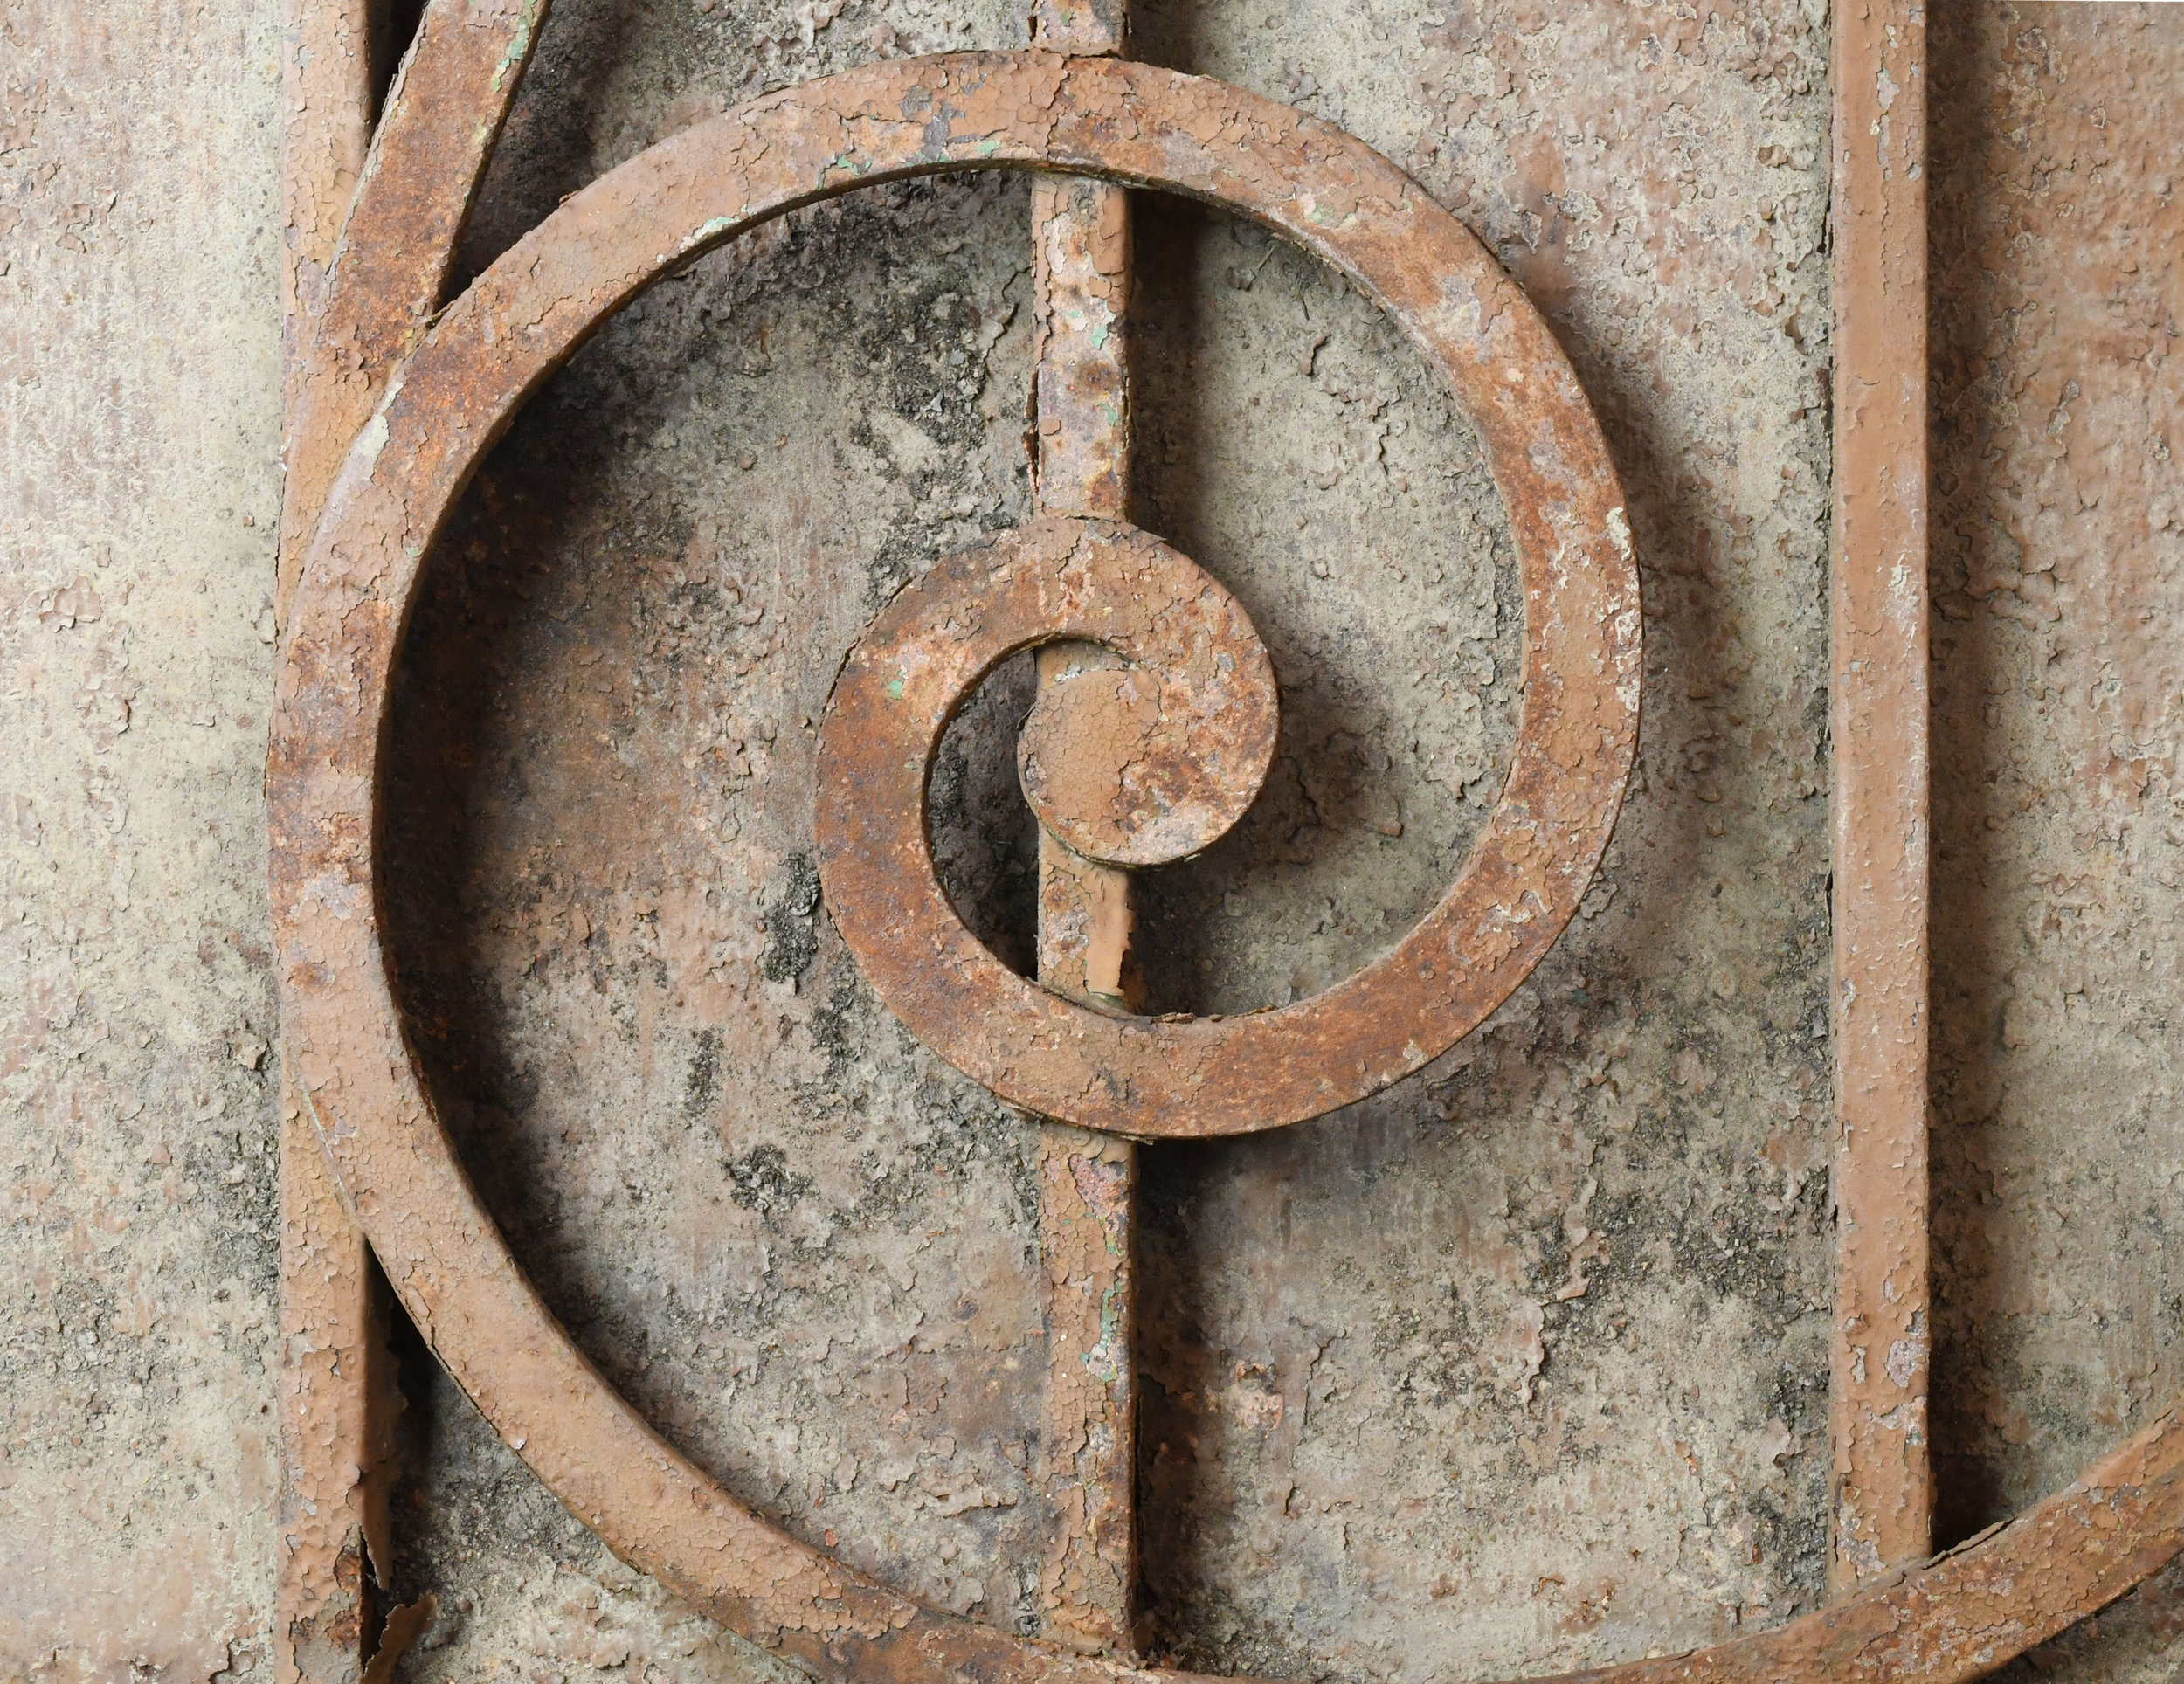 47498-Arched-iron-gate-detail-1.jpg